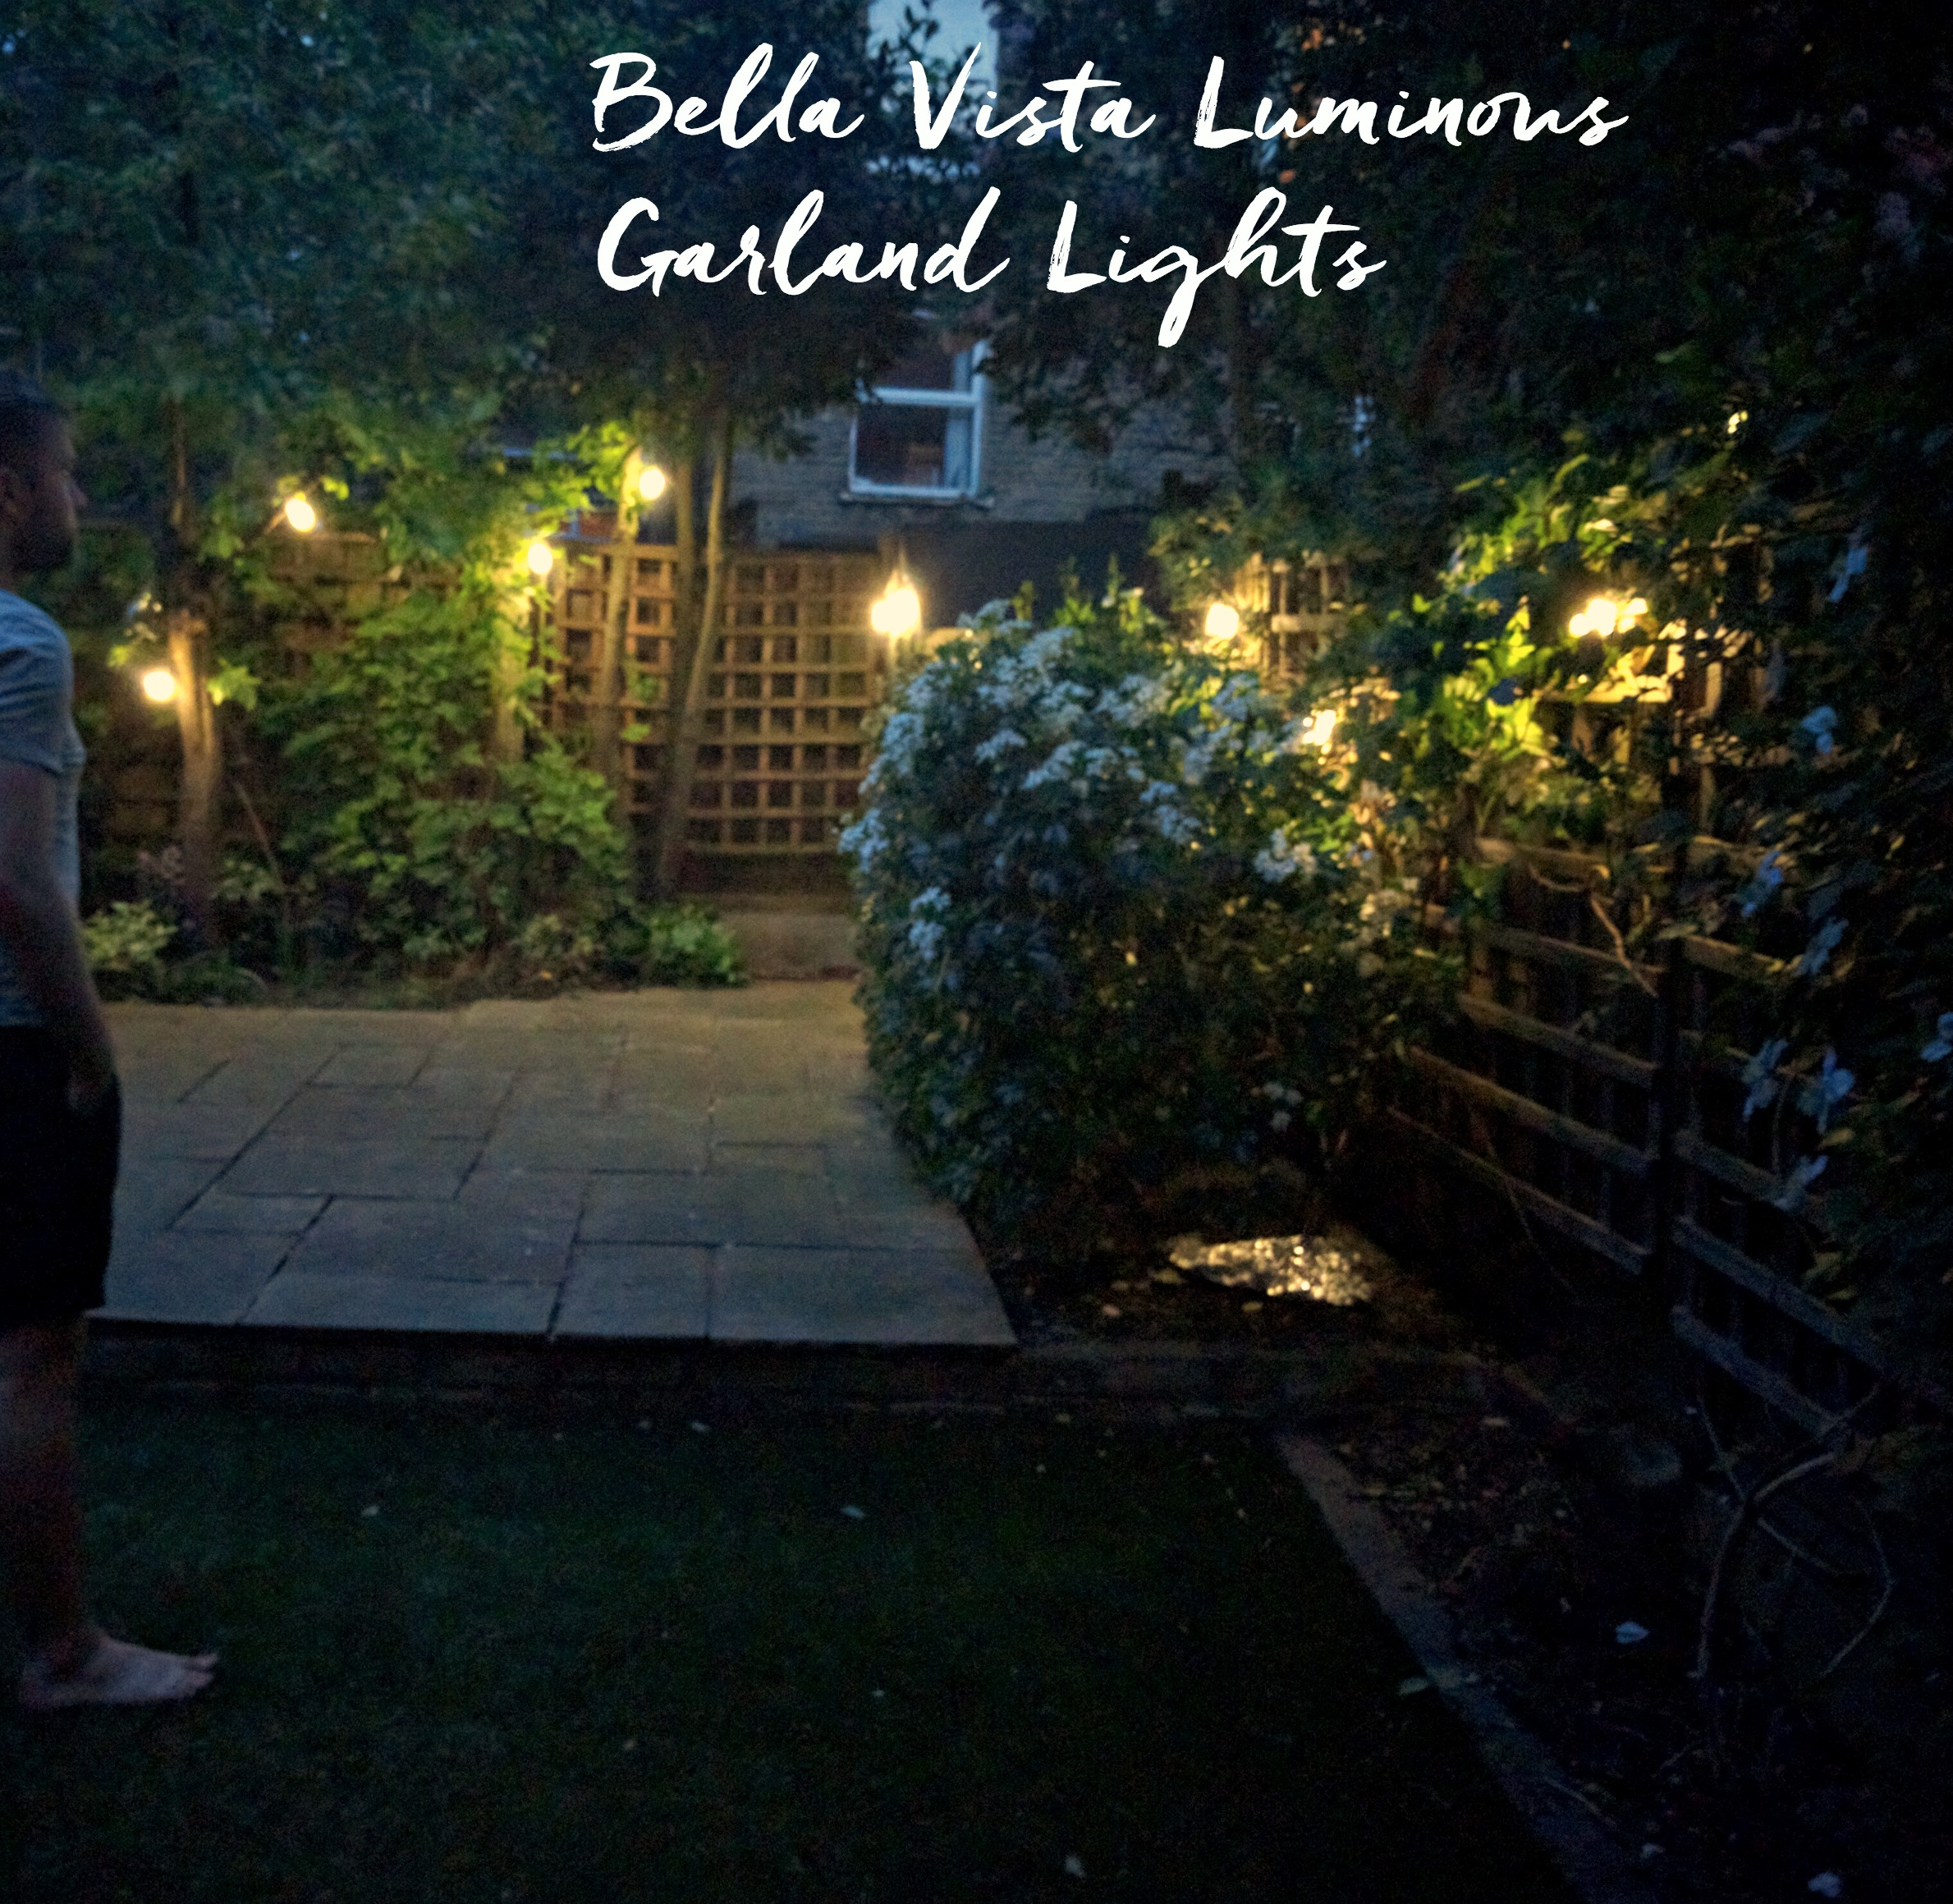 Bella Vista Lumious Garland Lights by Seletti